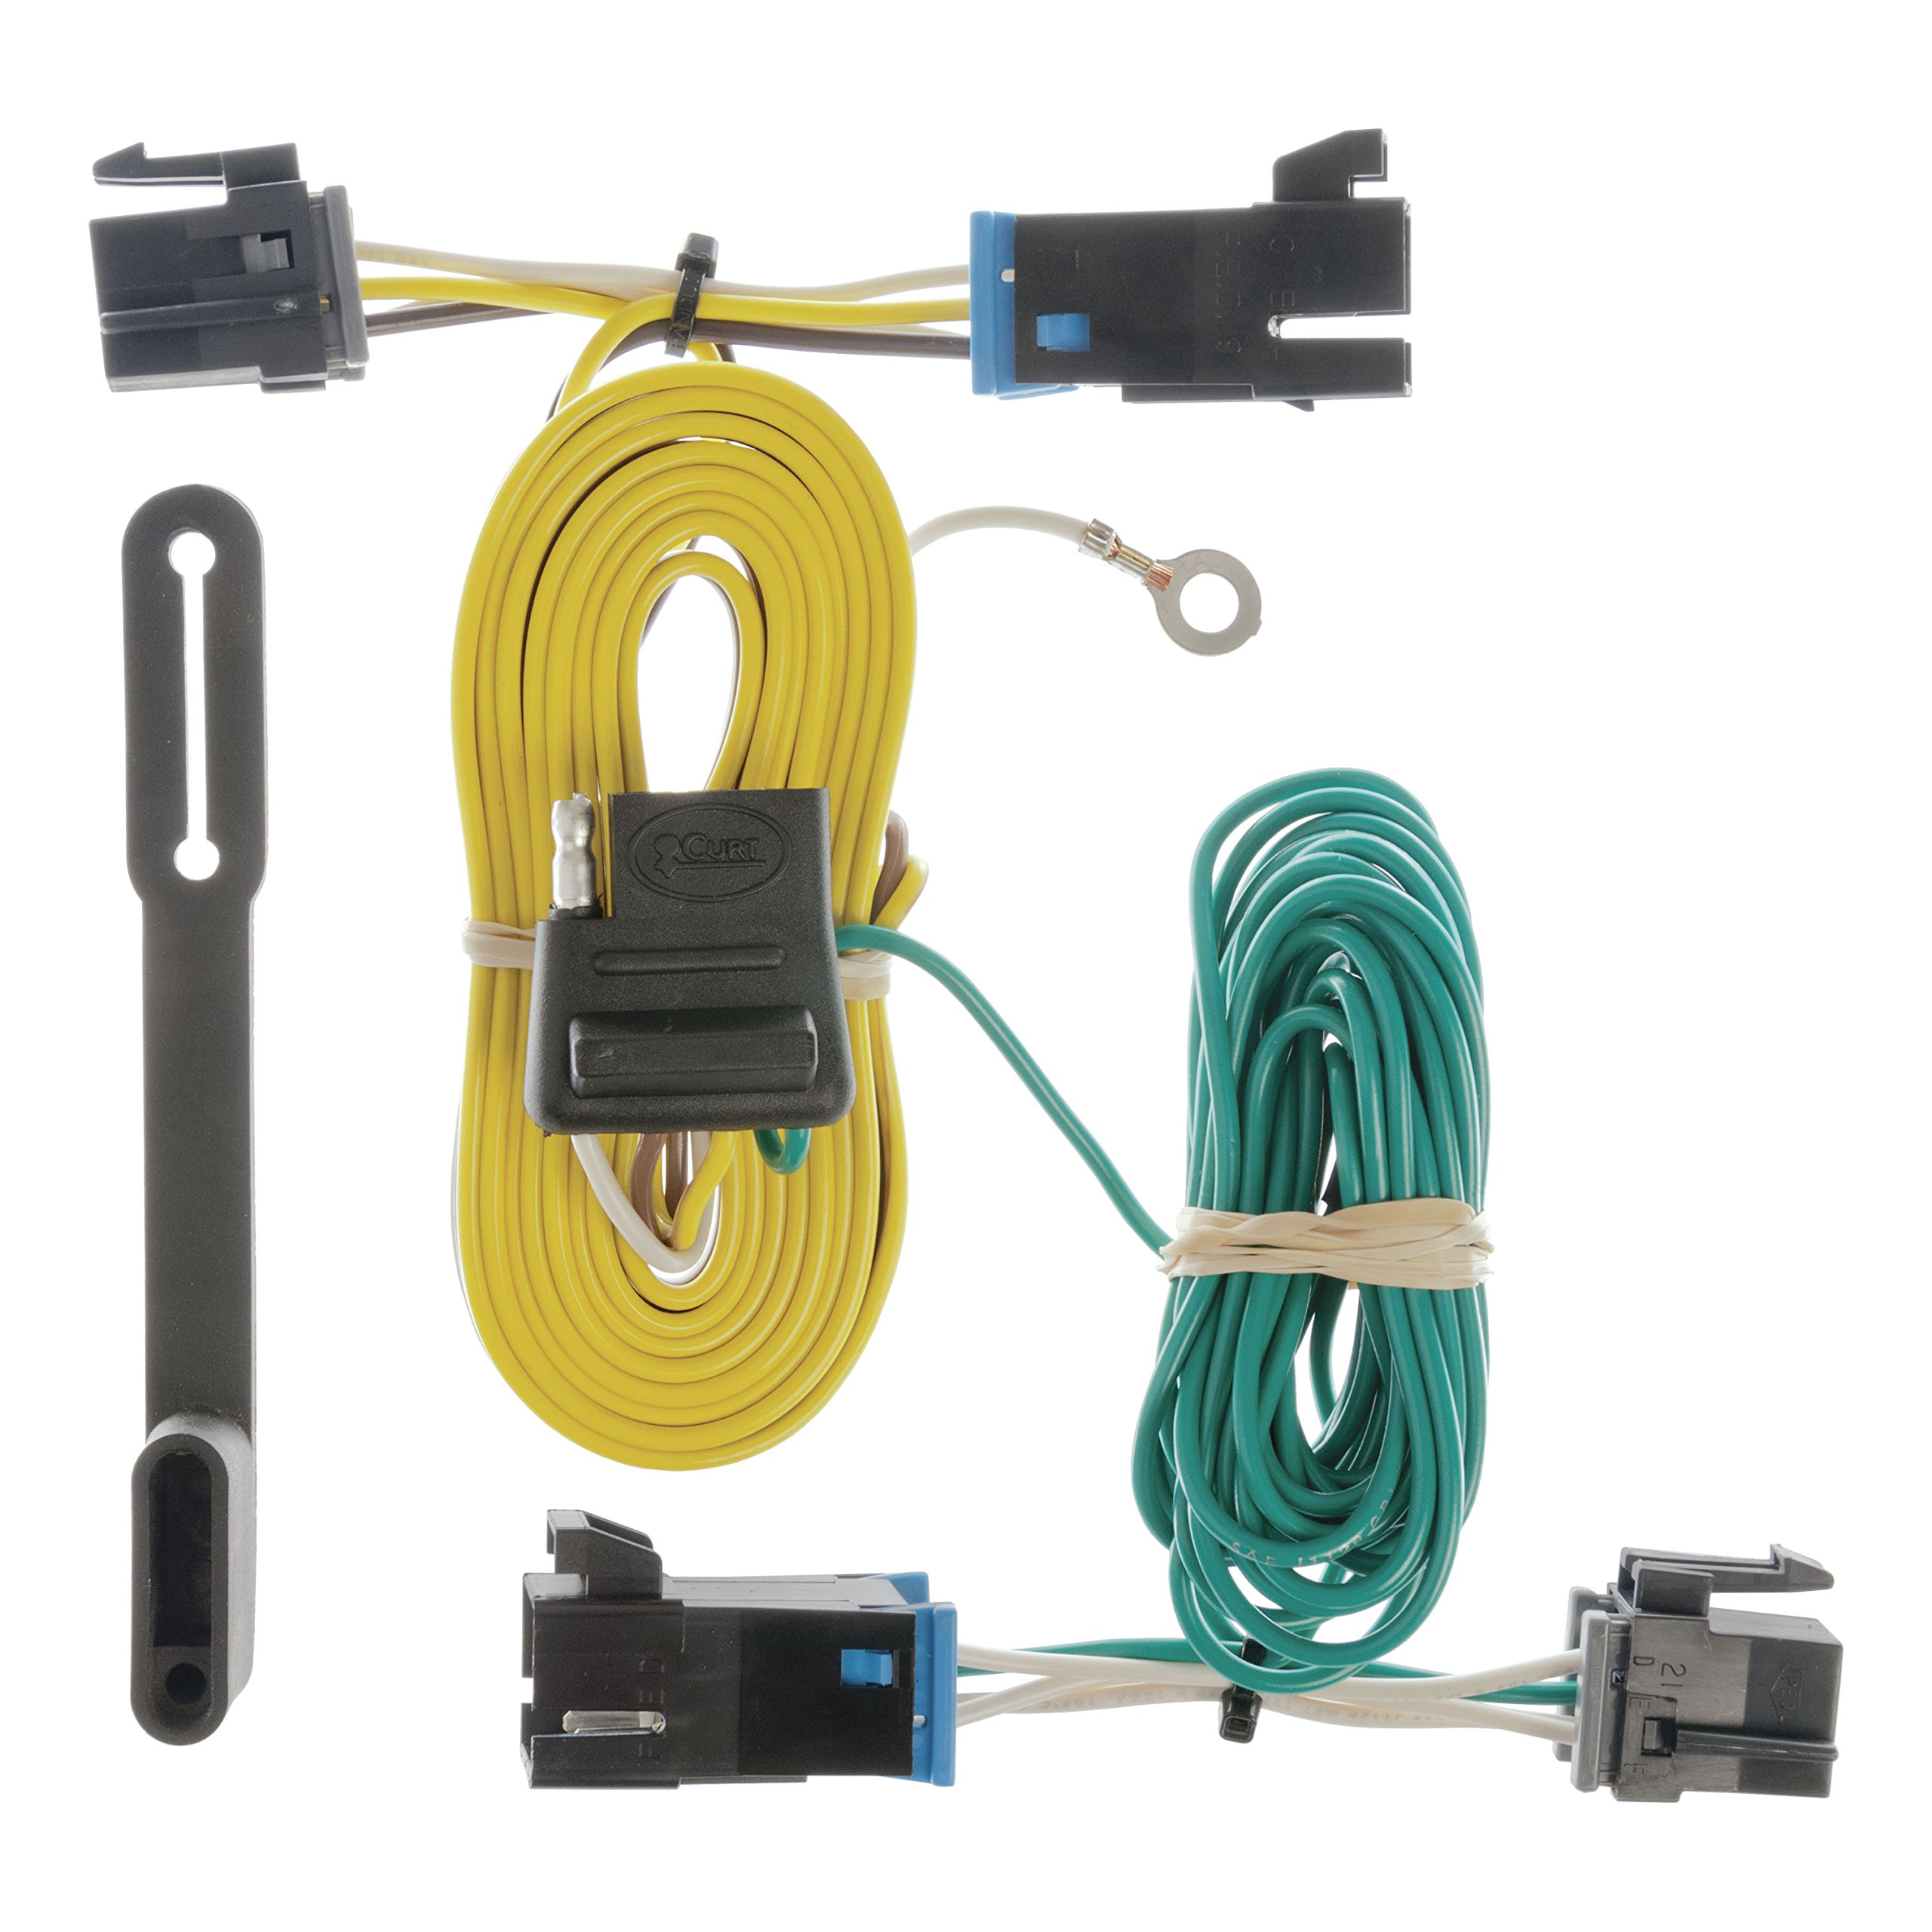 CURT 55540 Vehicle-Side Custom 4-Pin Trailer Wiring Harness for Select Chevrolet Express, GMC Savana by CURT